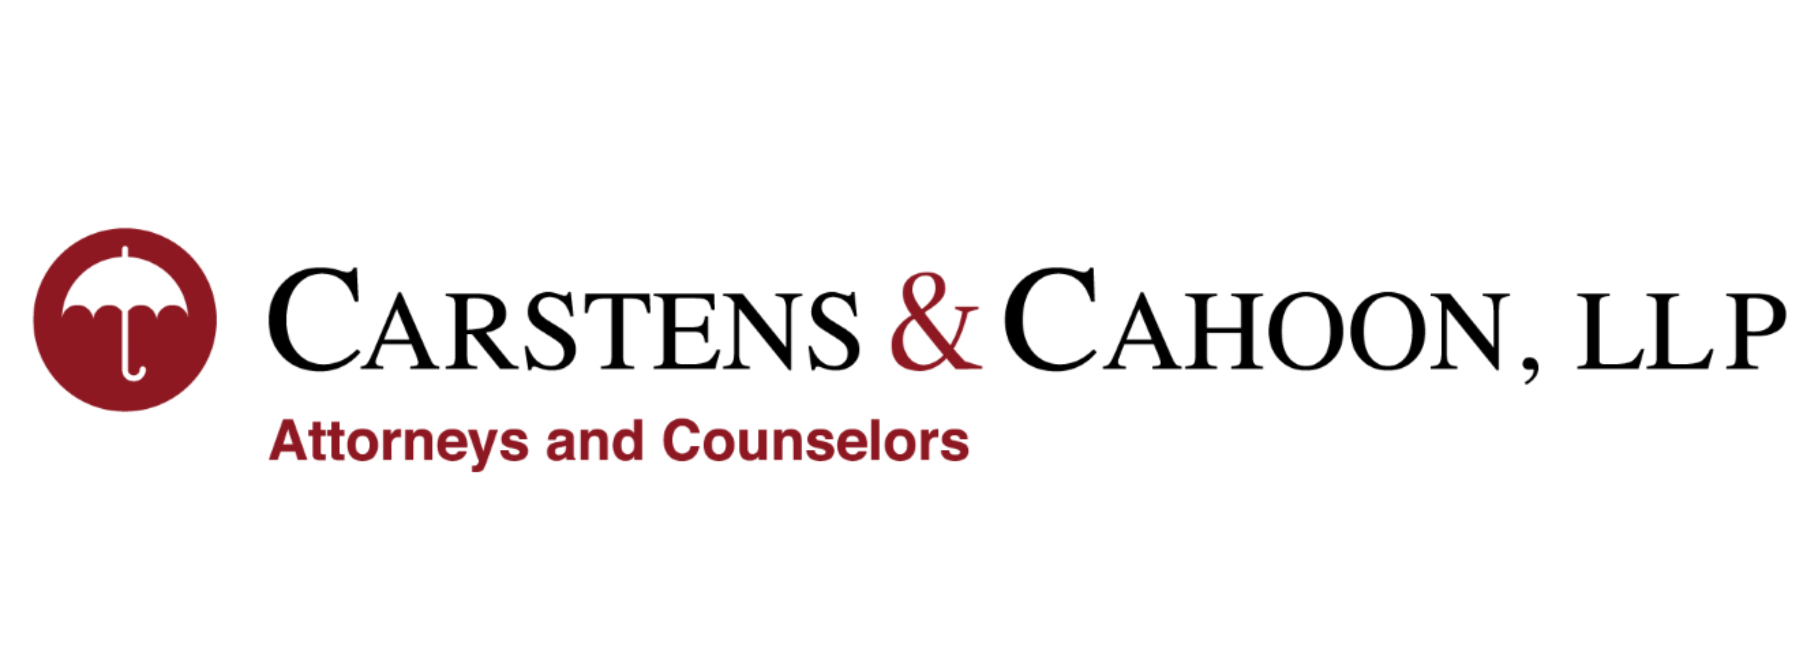 Carstens & Cahoon, LLP